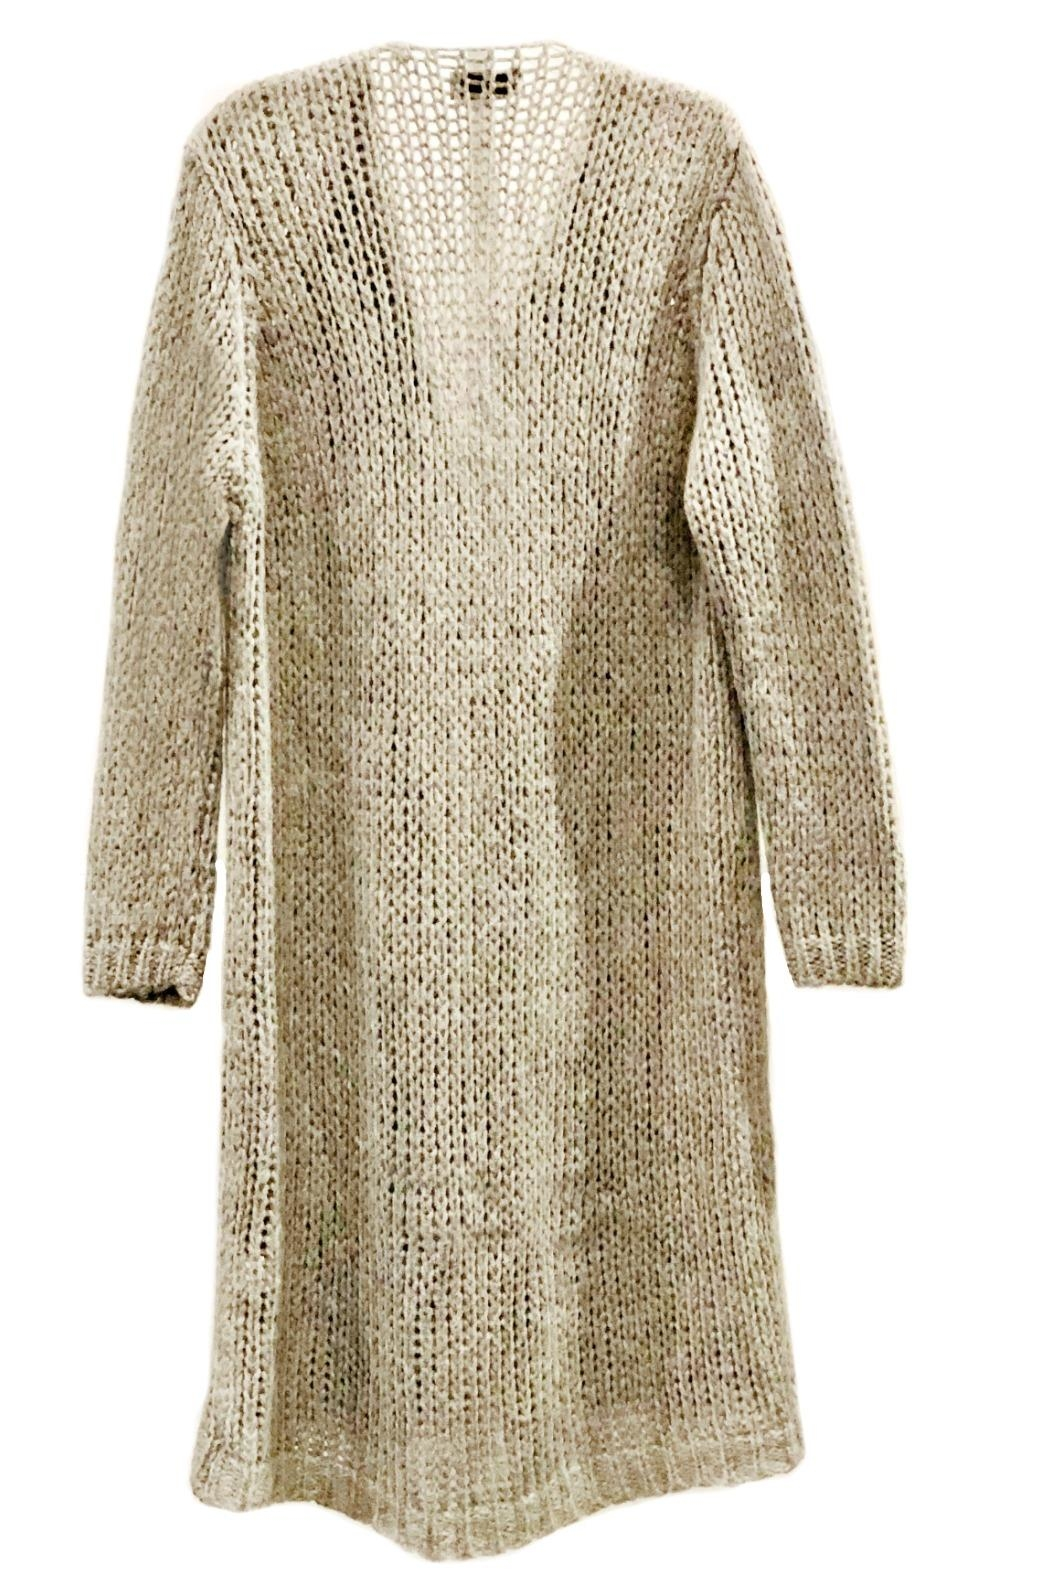 ANTONELLO SERIO Knitted Maxi Cardigan - Front Full Image